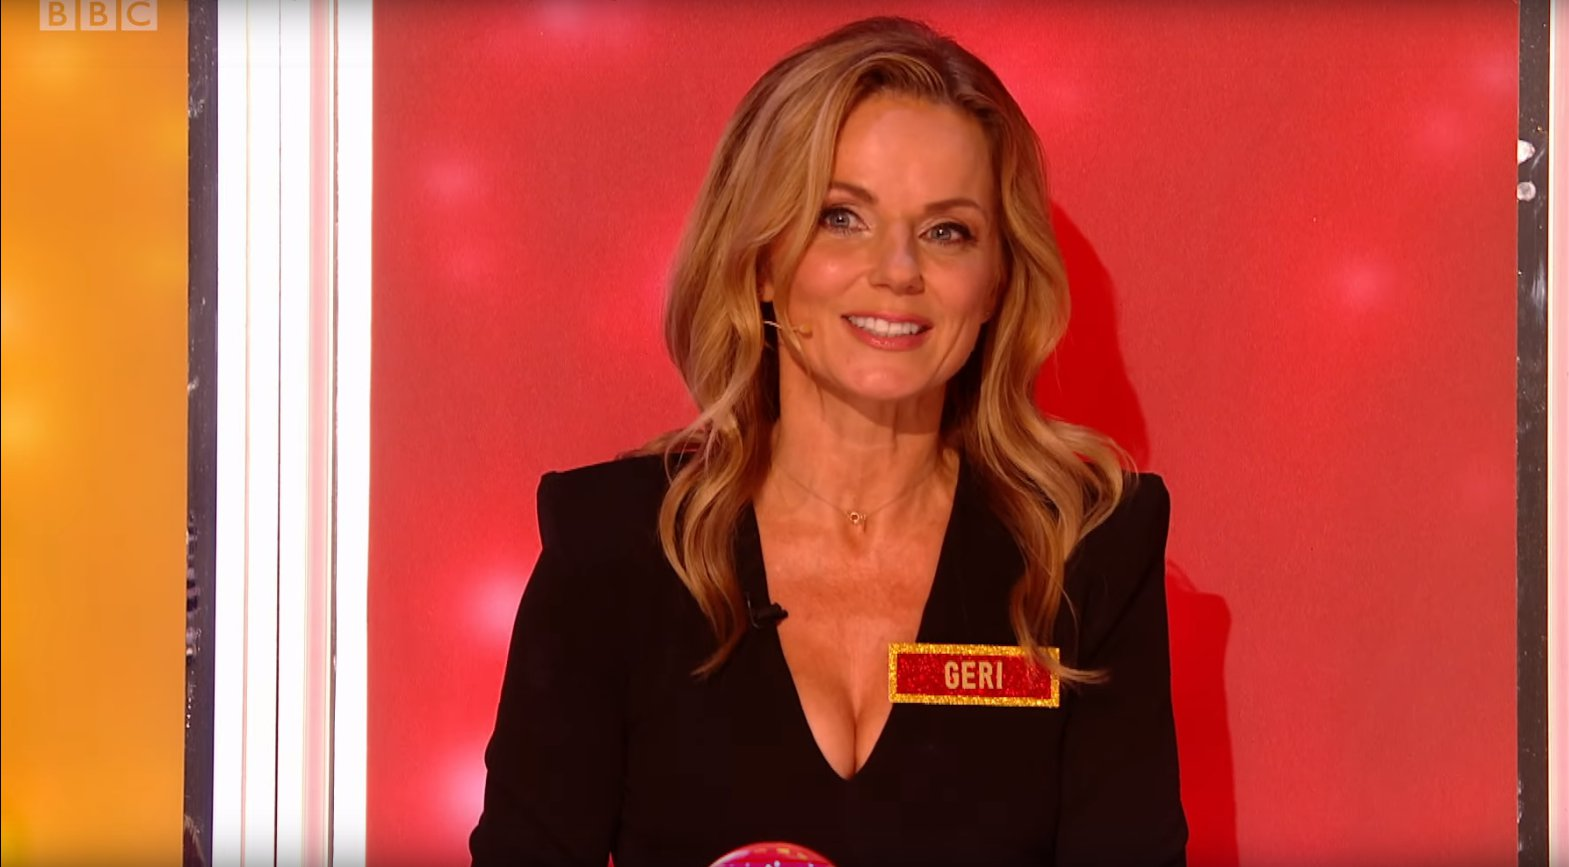 All Together Now winner Shellyann Evans will spend £50,000 prize money on her wedding and wants Geri Horner to give her away